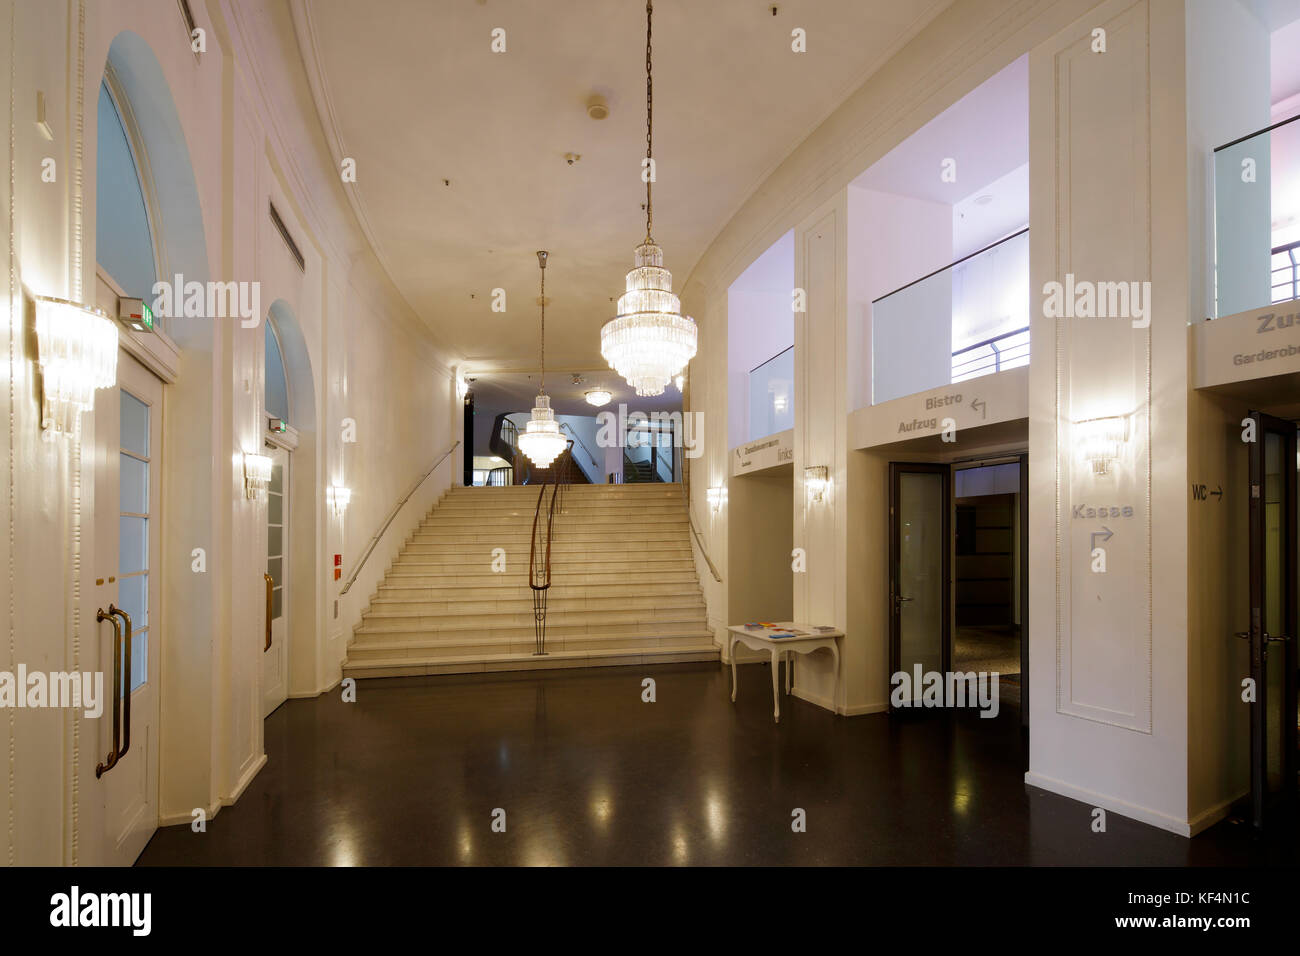 state theatre entrance hall stock photos state theatre entrance hall stock images alamy. Black Bedroom Furniture Sets. Home Design Ideas